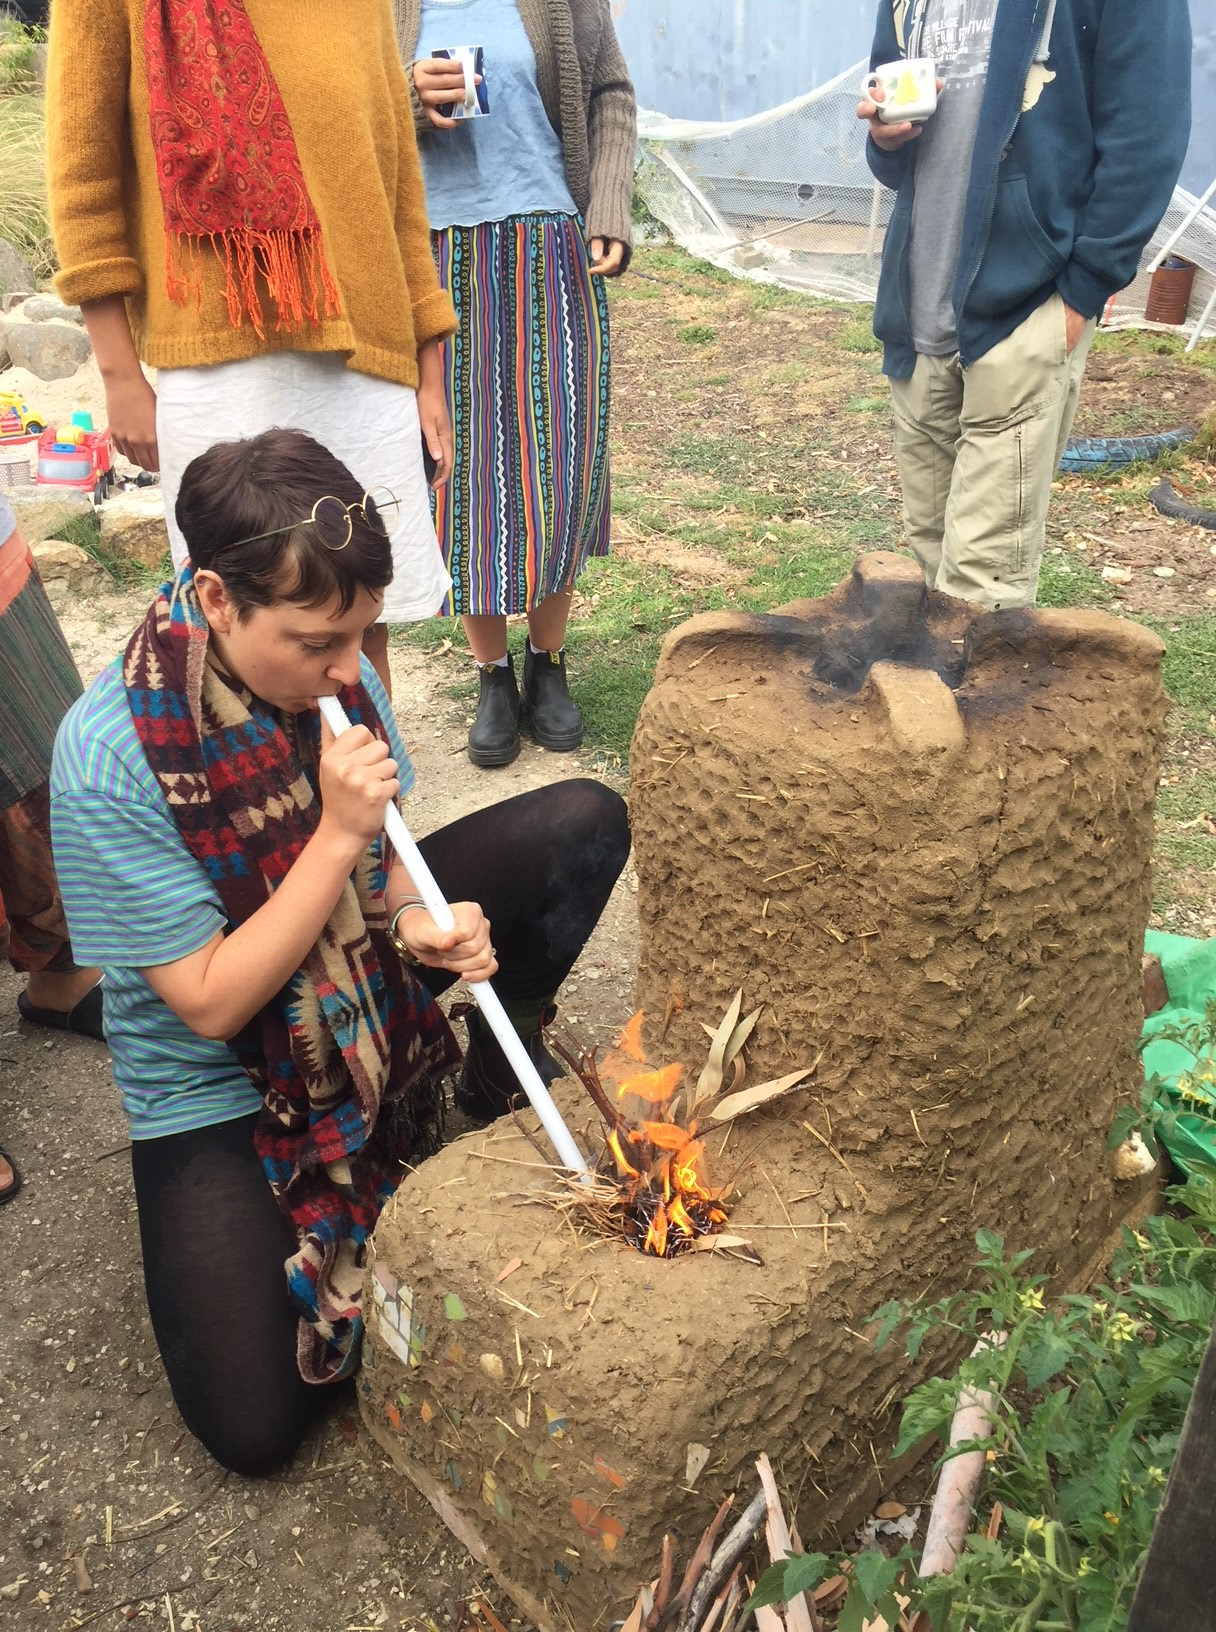 PDC3 – Lucy boosting jet stove